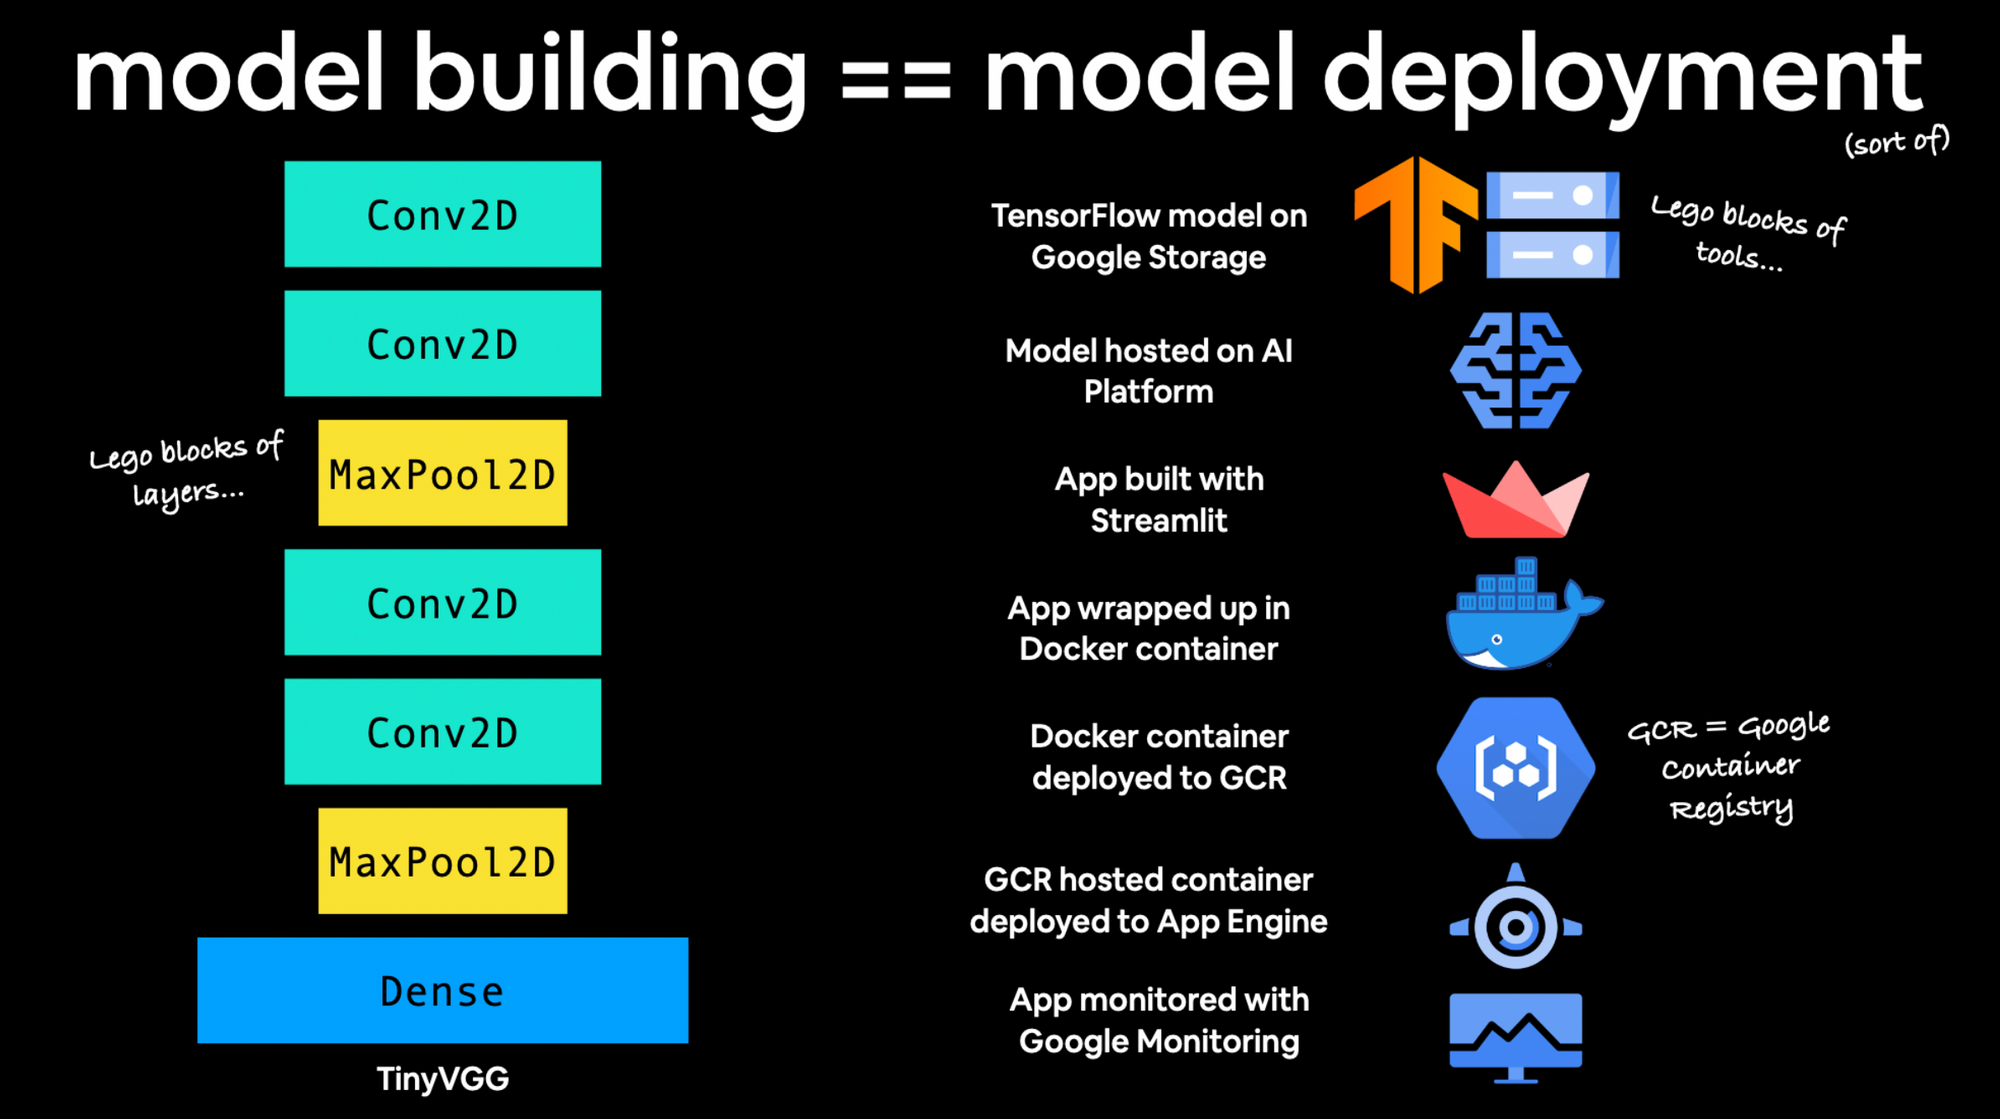 machine learning model deployment is like machine learning model building (sort of)